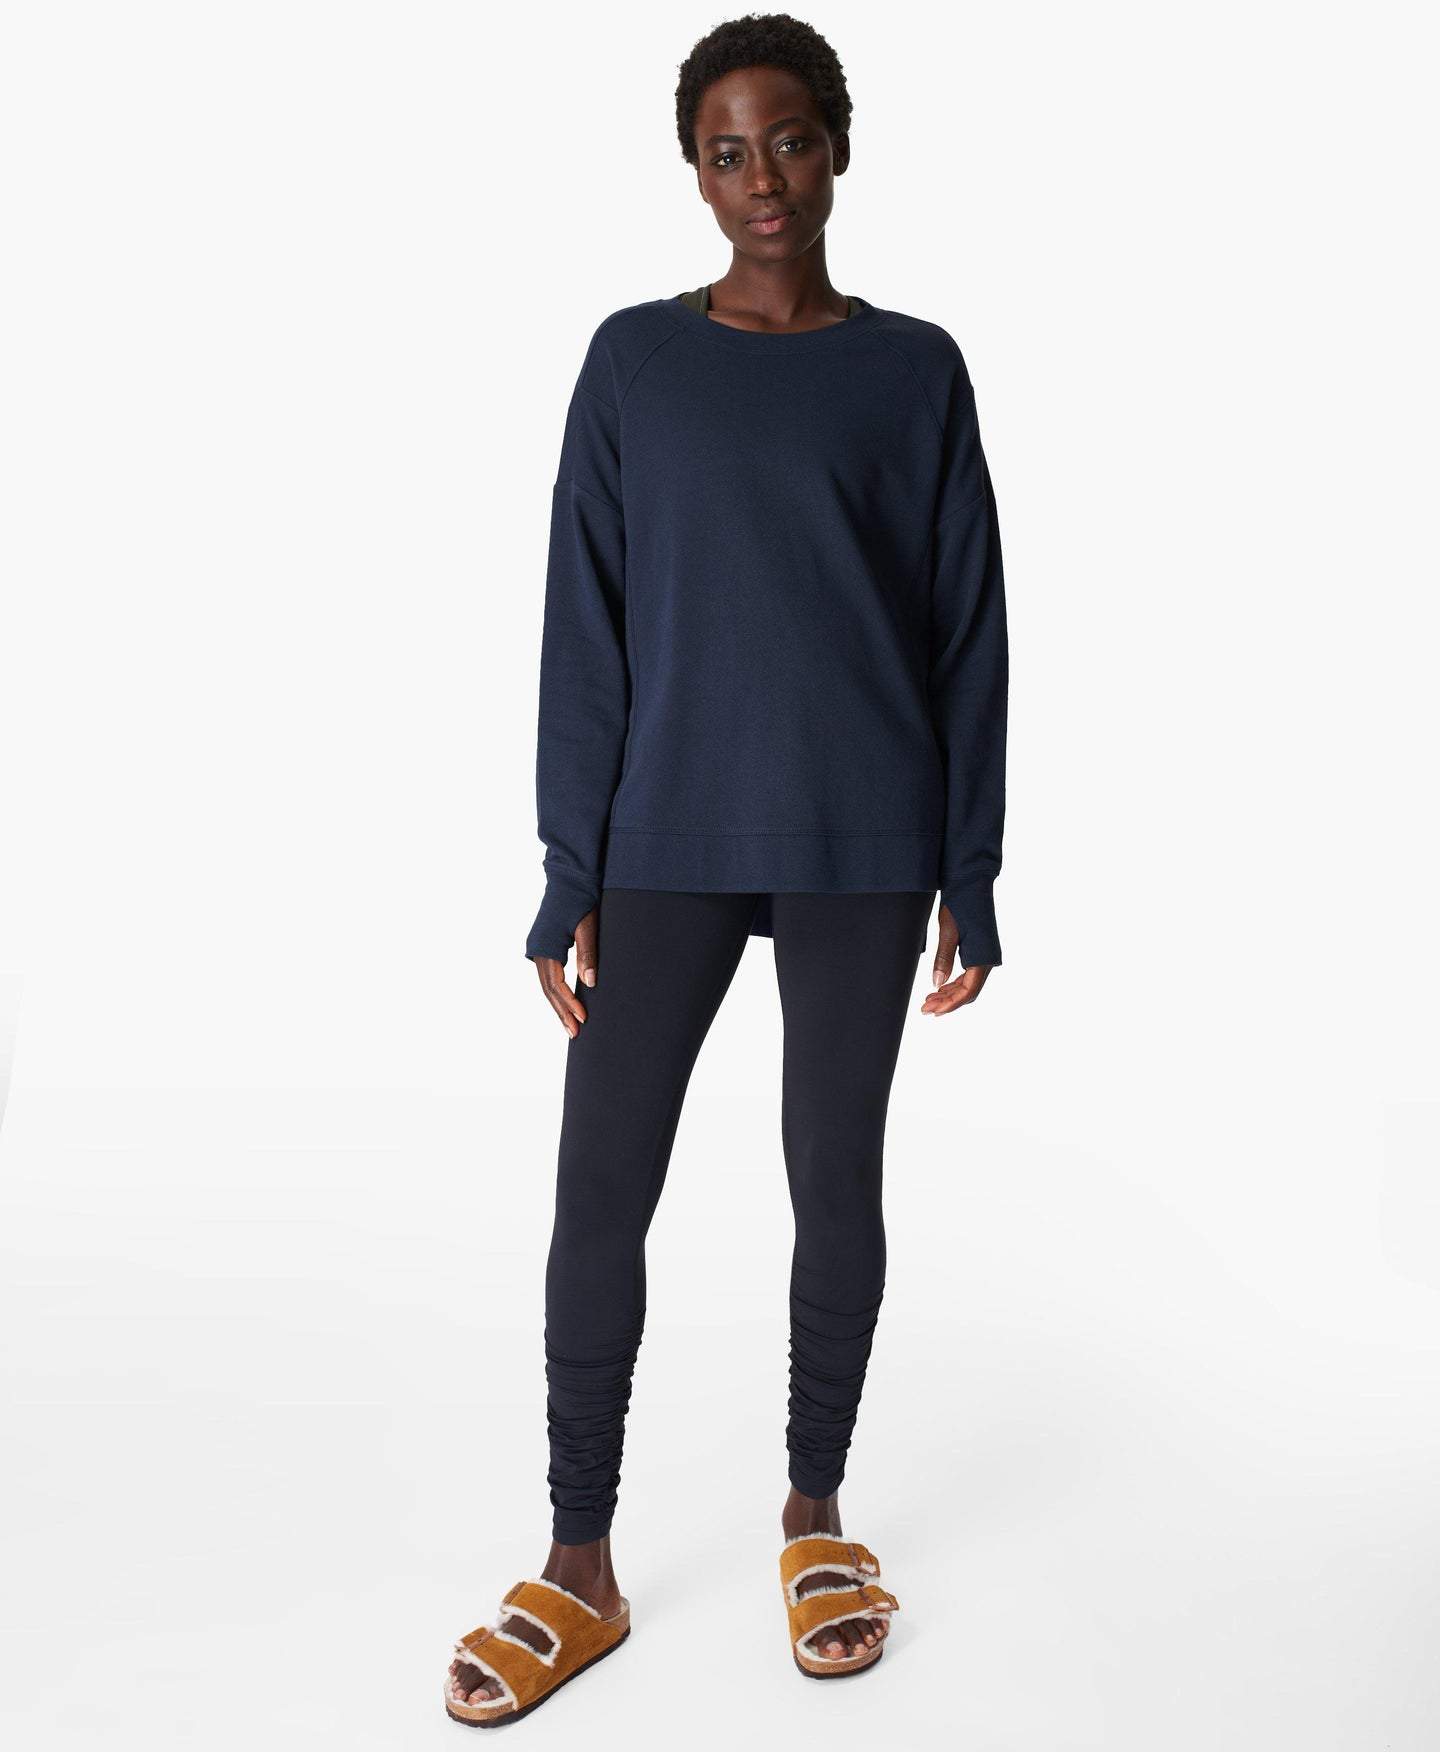 After Class Sweatshirt Navy-Blue